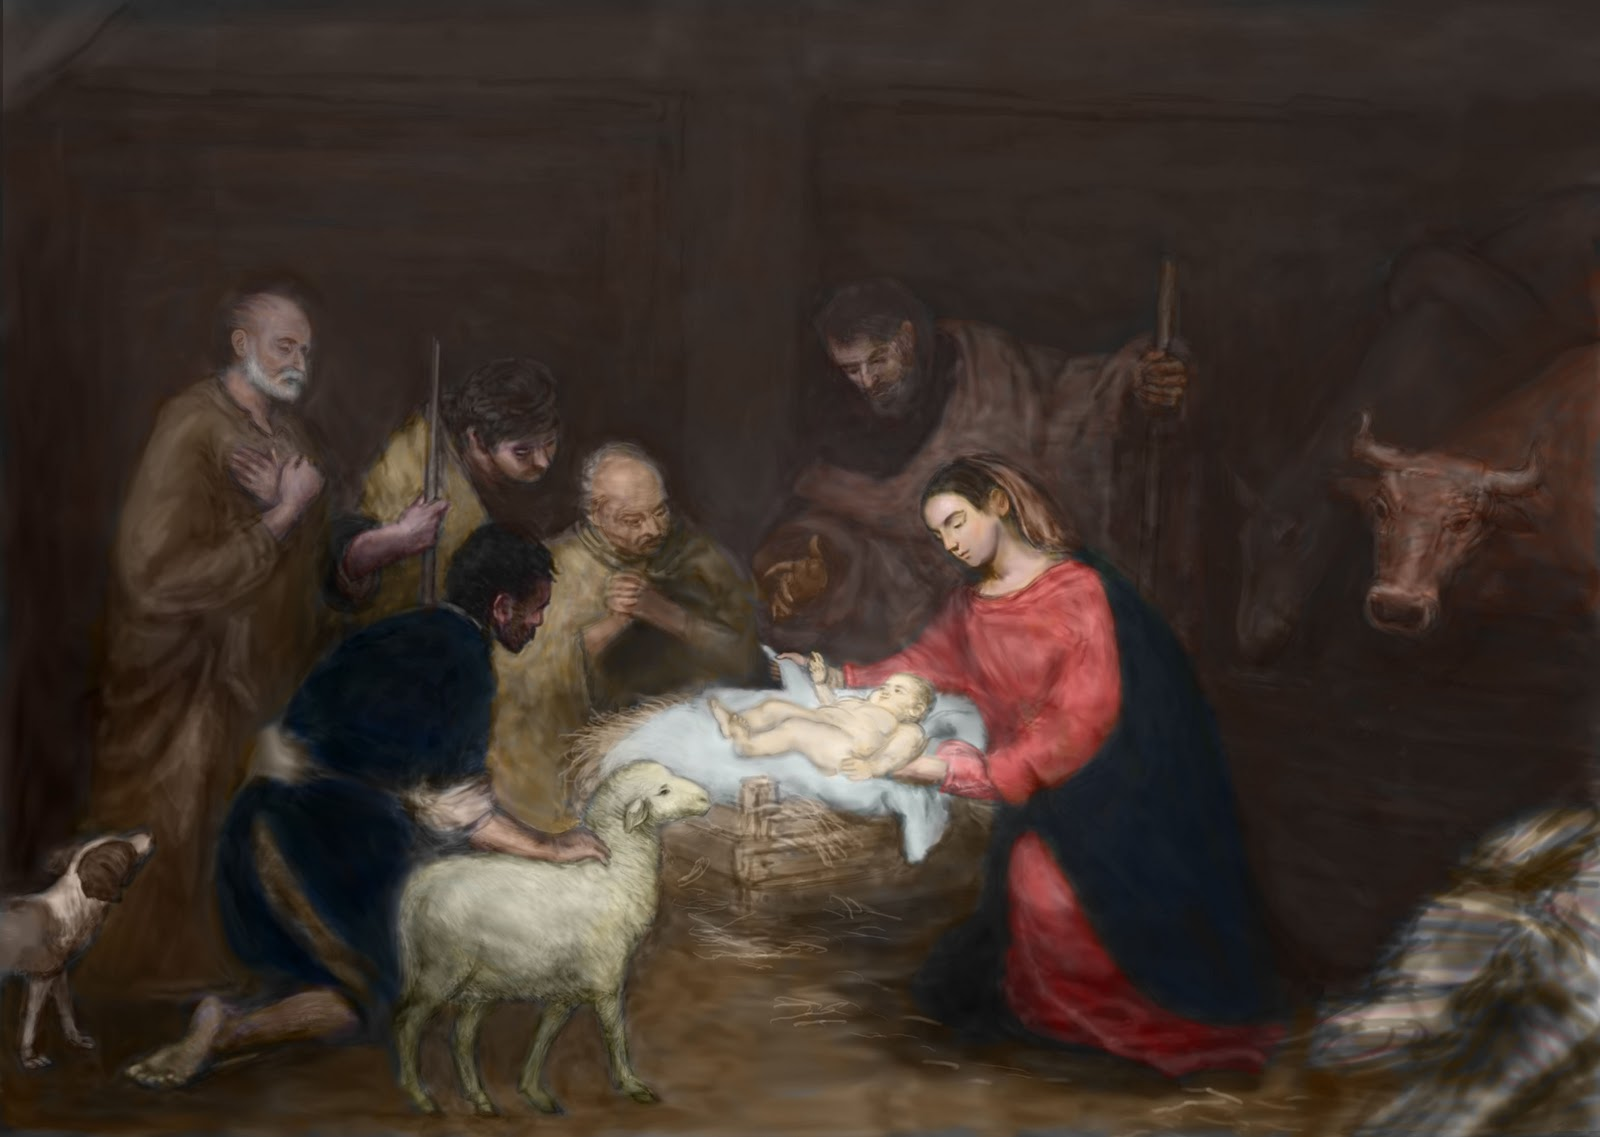 Famous Painting of the Nativity submited images.